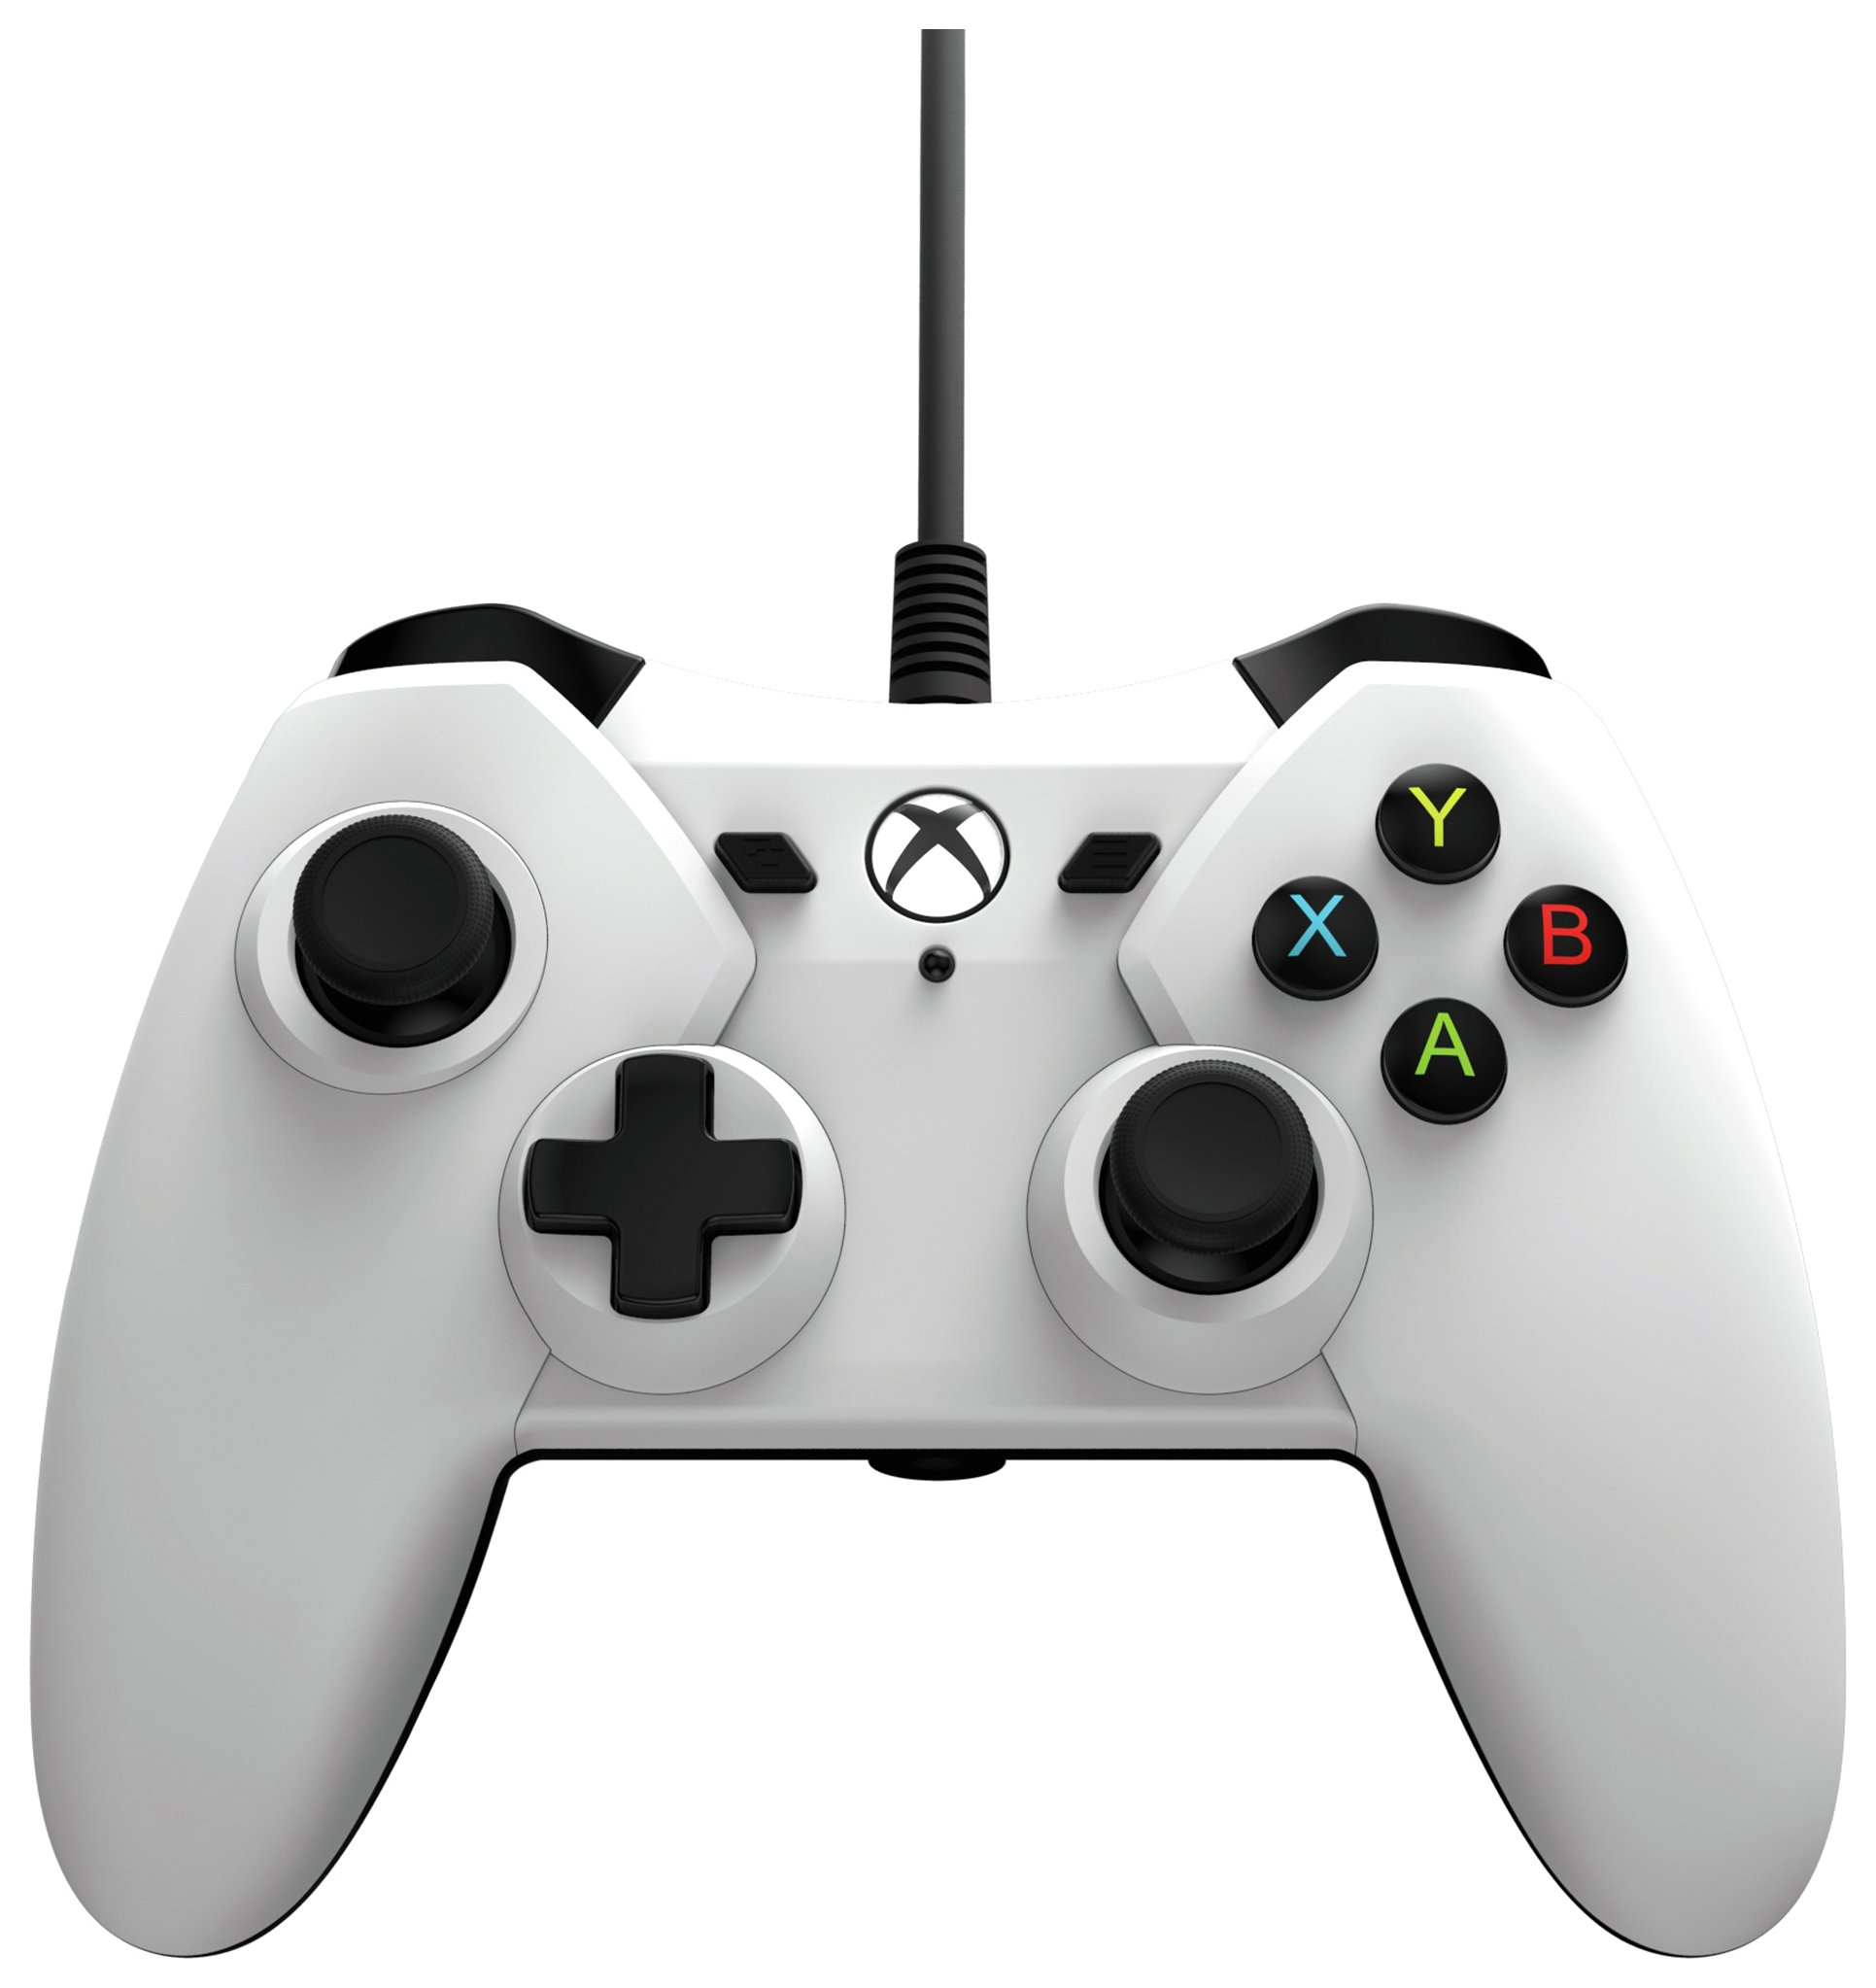 Xbox one controllers and steering wheels | Page 3 | Argos Price ...